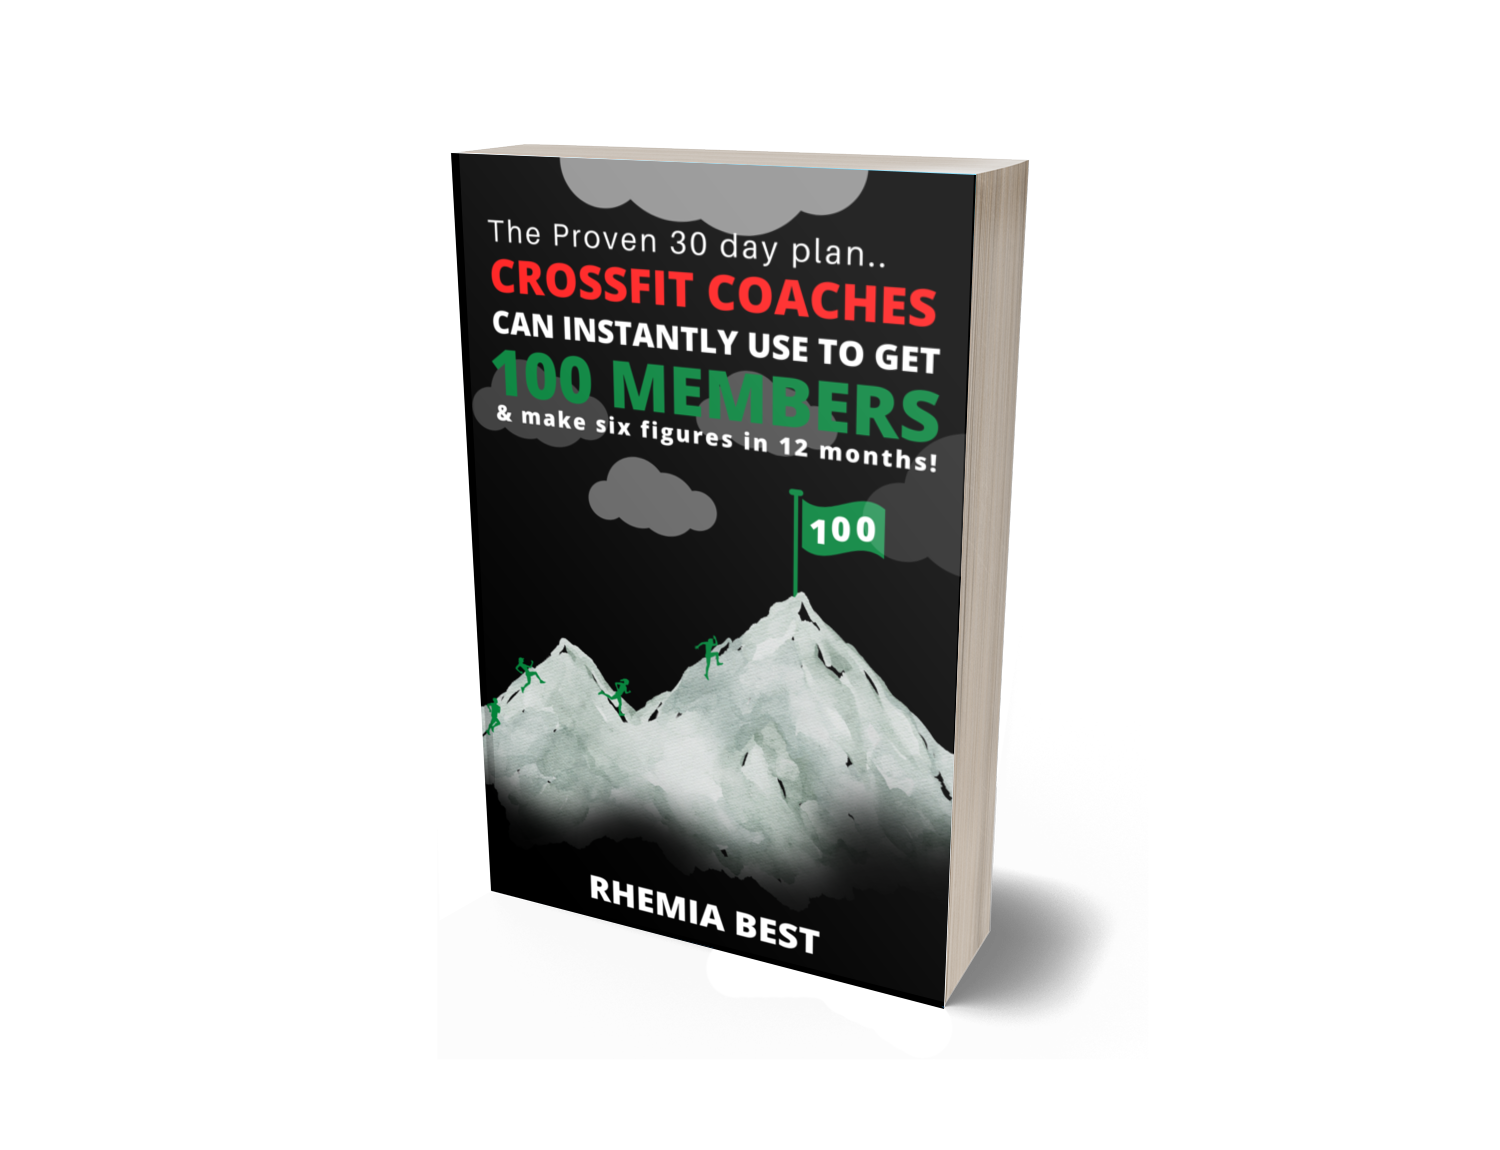 The Proven 30 day plan for fitness coaches